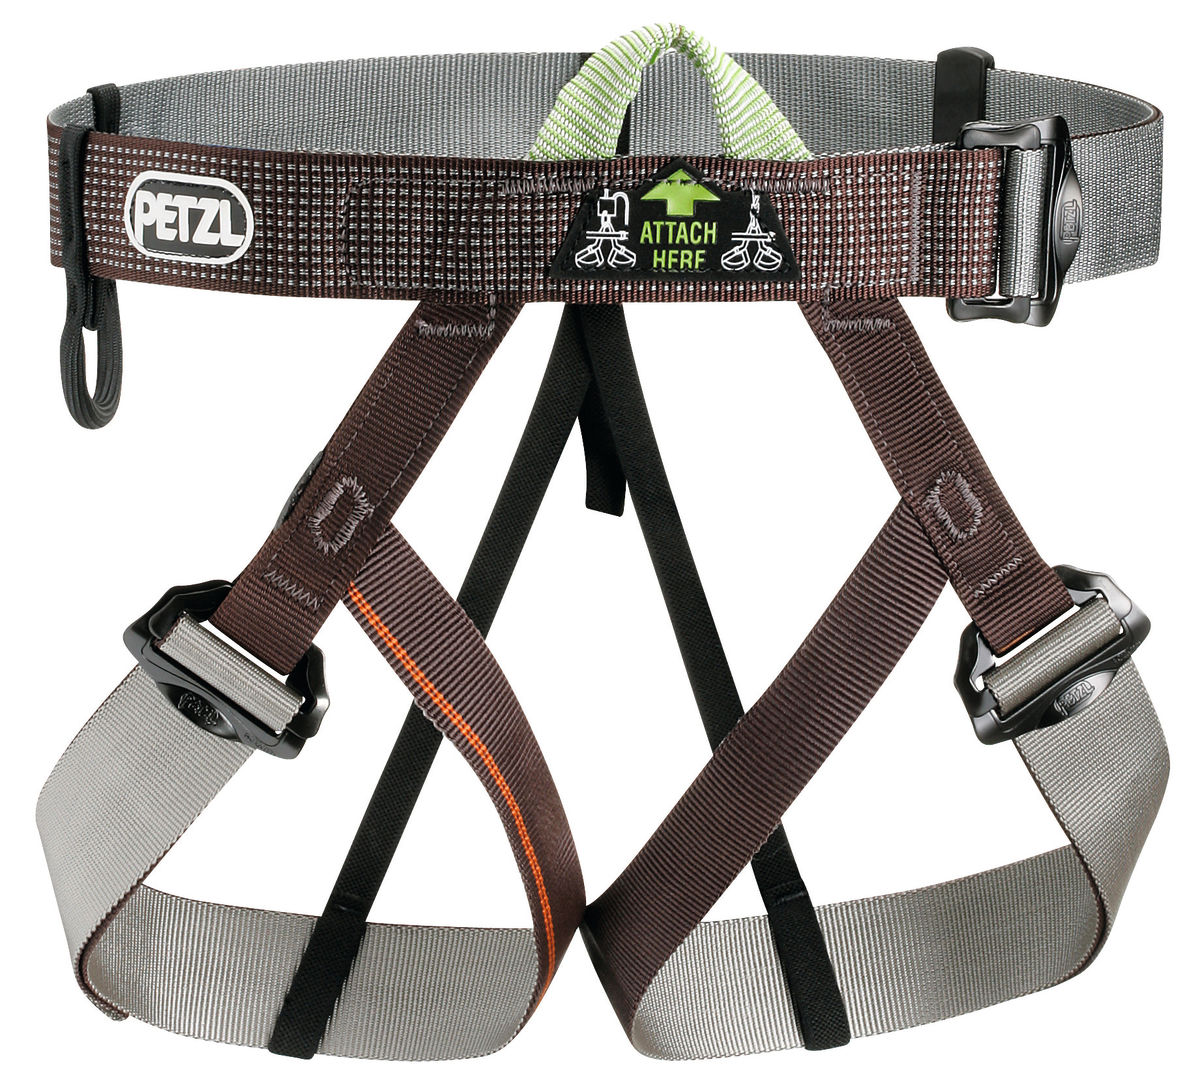 PANDION - Harnesses | Petzl Other